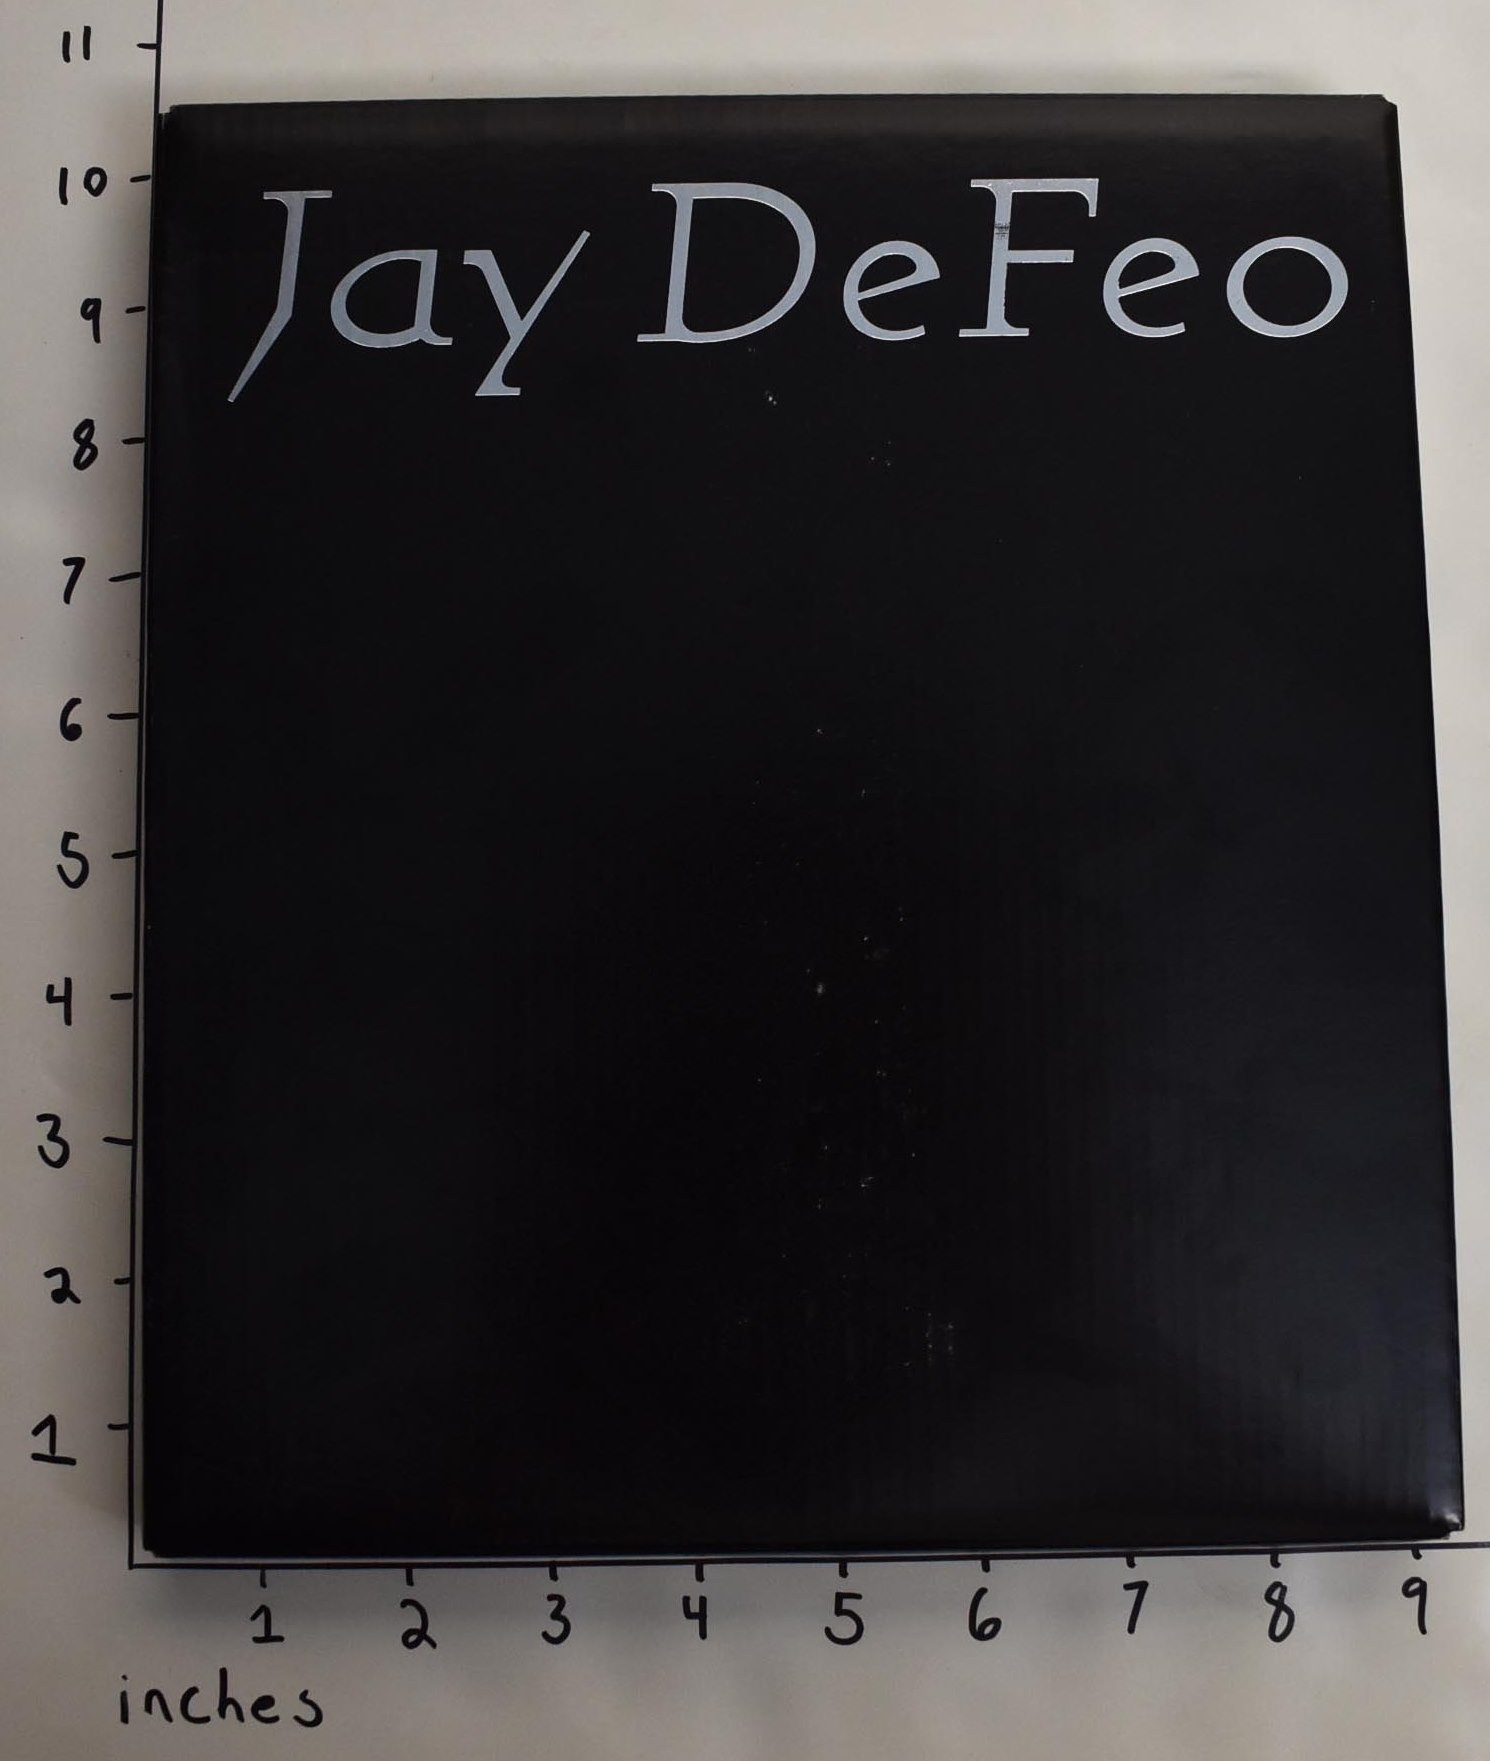 RATCLIFF, CARTER - Jay Defeo: Ingredients of Alchemy, Before and After the Rose